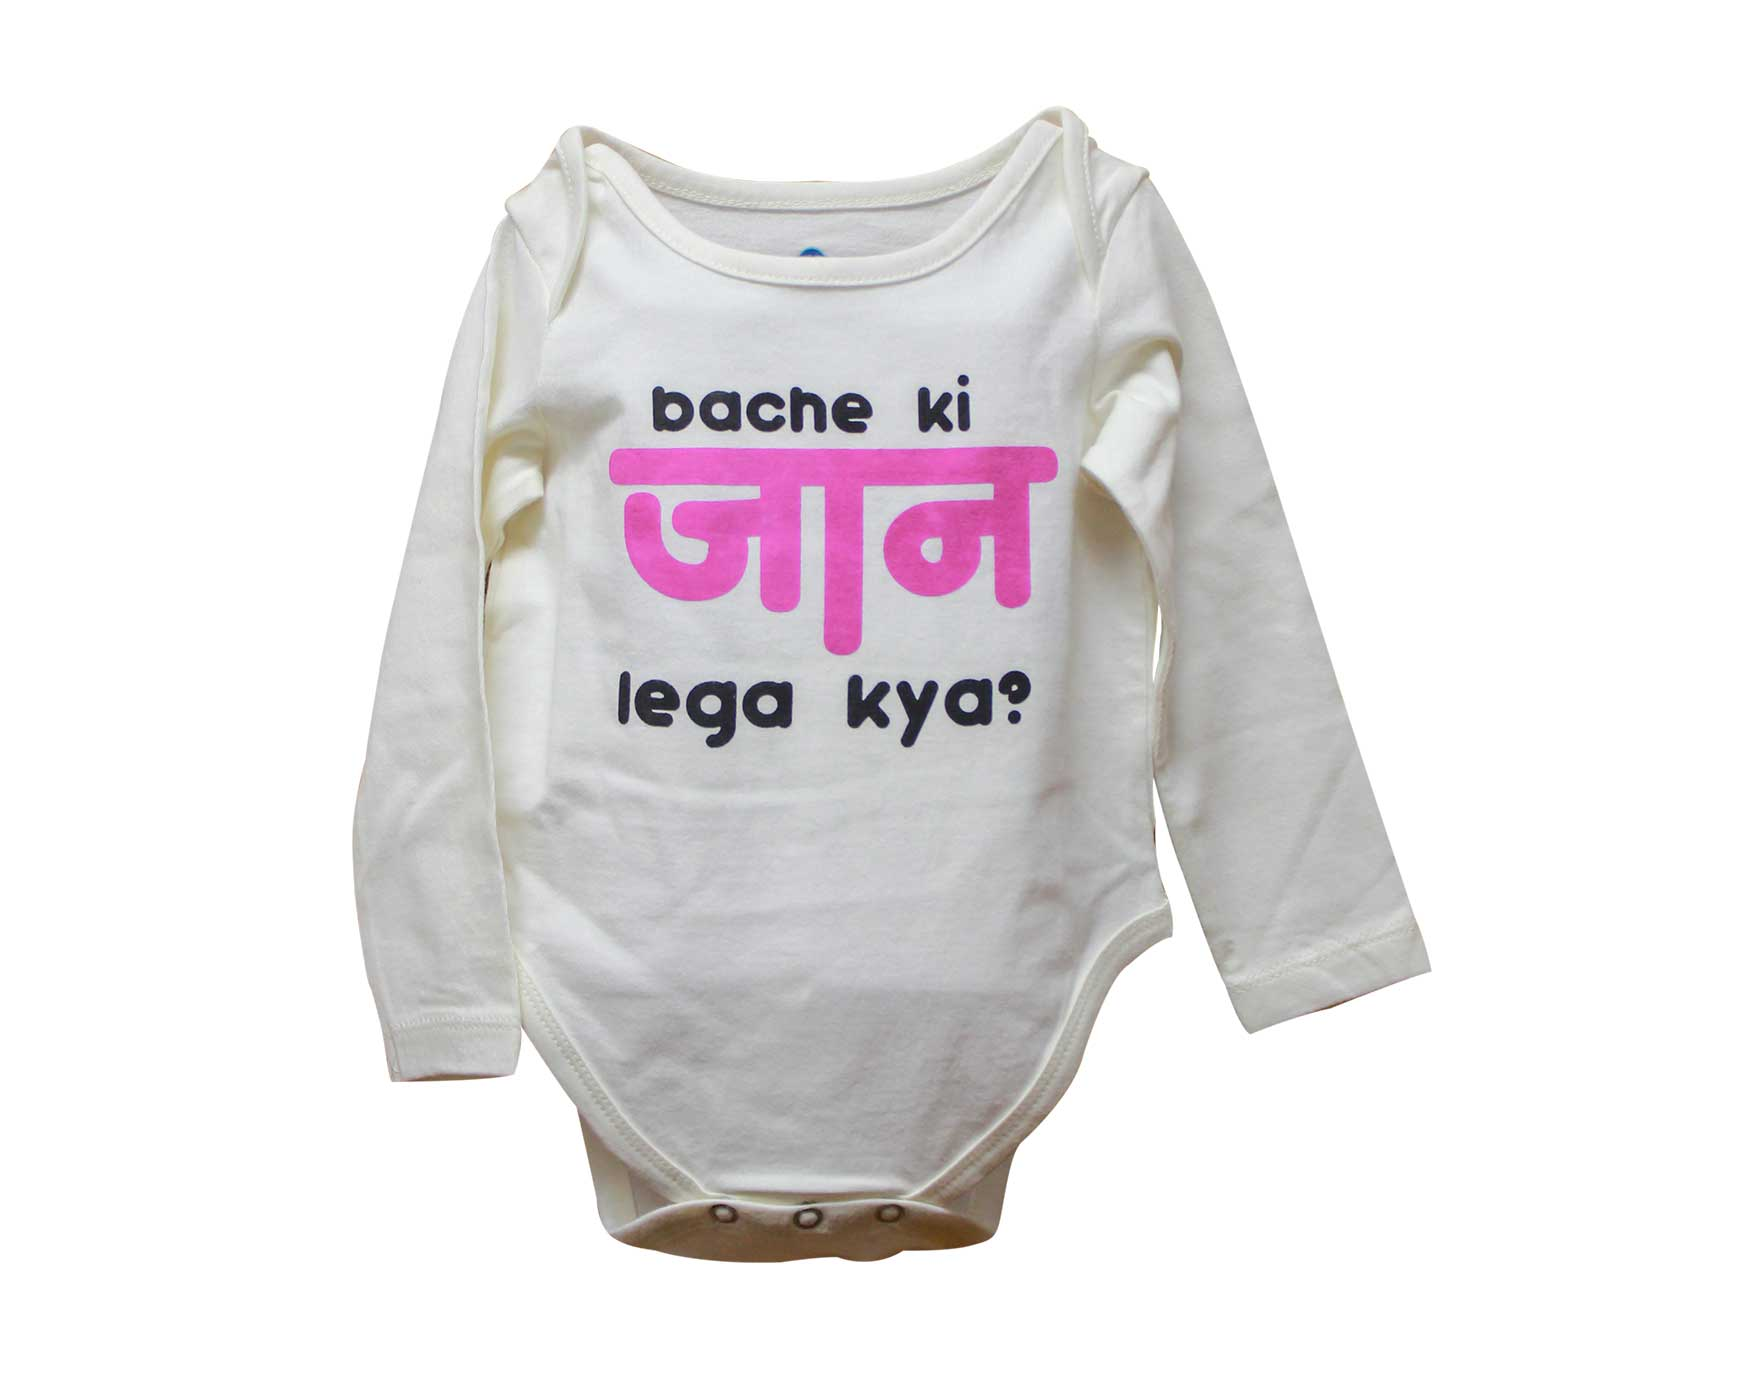 bache ki jaan kids romper for kids .jpg